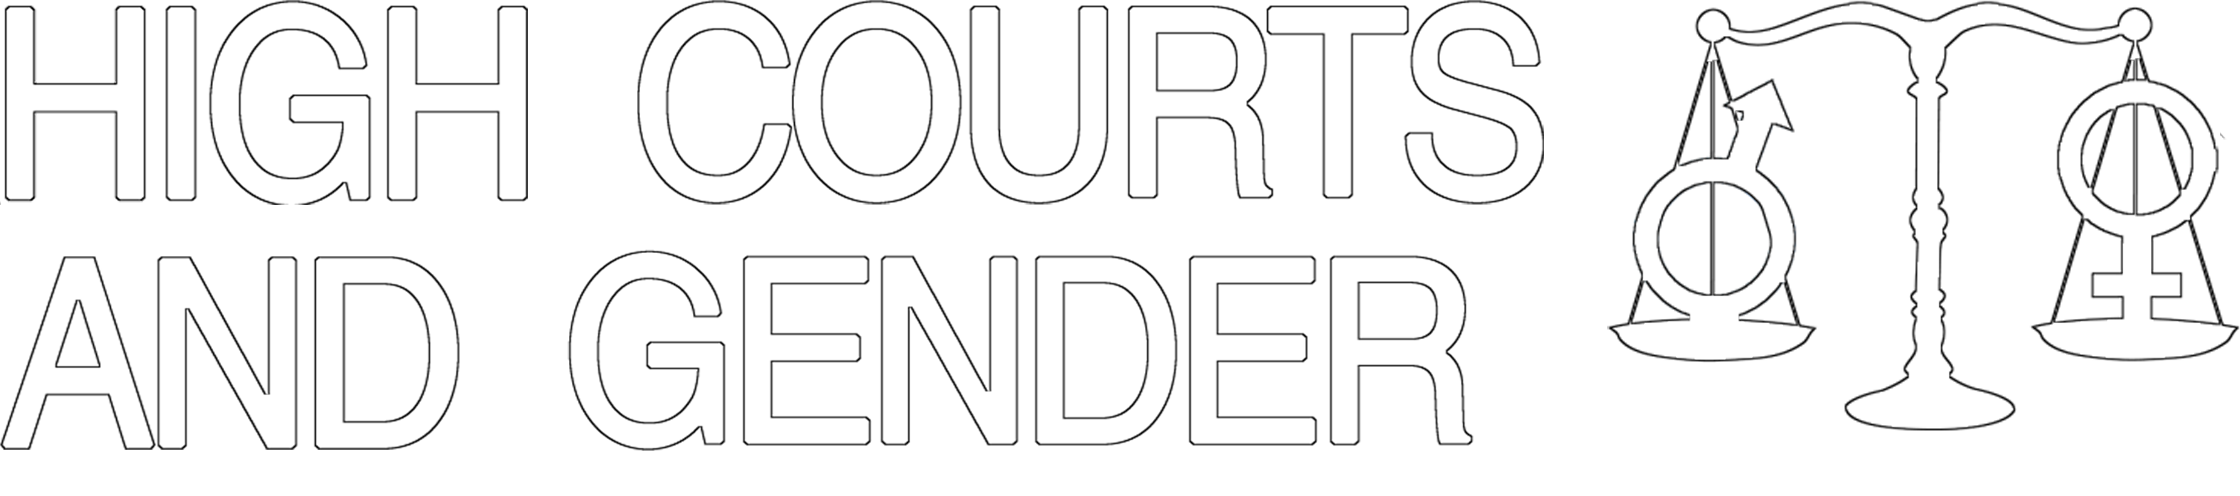 High Courts and Gender